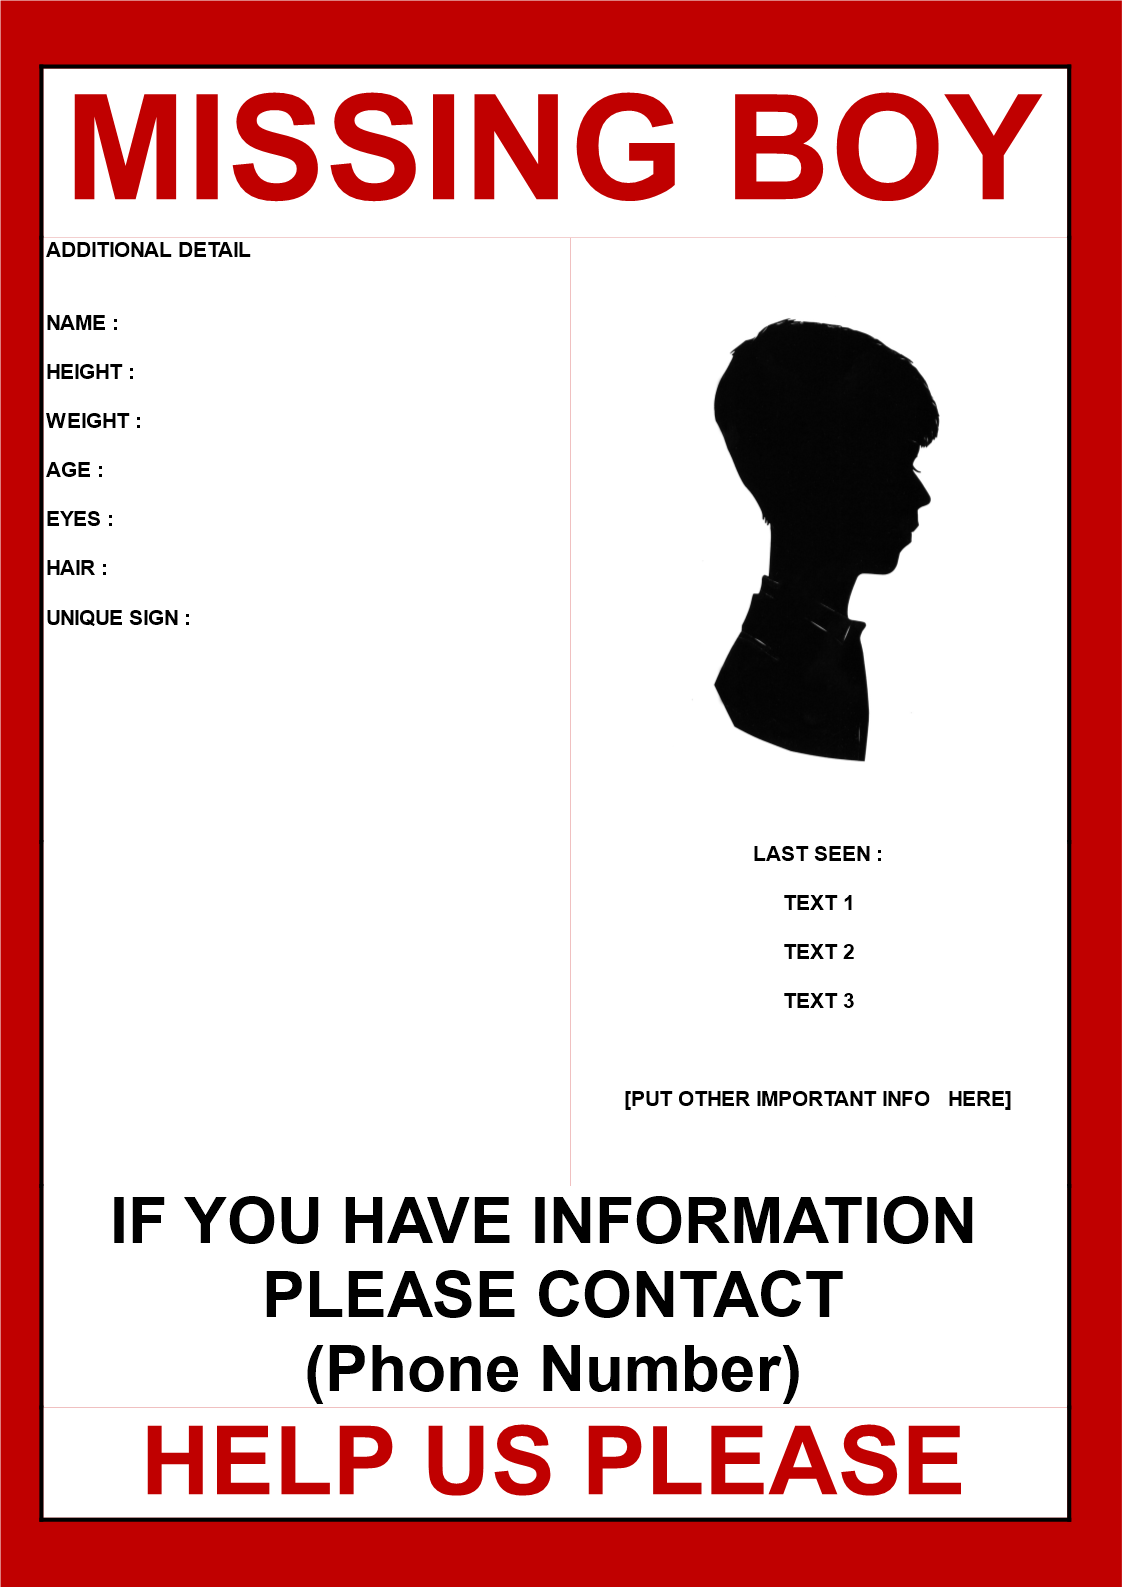 Free Missing Person Poster Template Color Lined Paper  D4a9f10c24805528214f1d71360bfee7 Free Missing Person Poster Templatehtml  Missing Person Poster Template